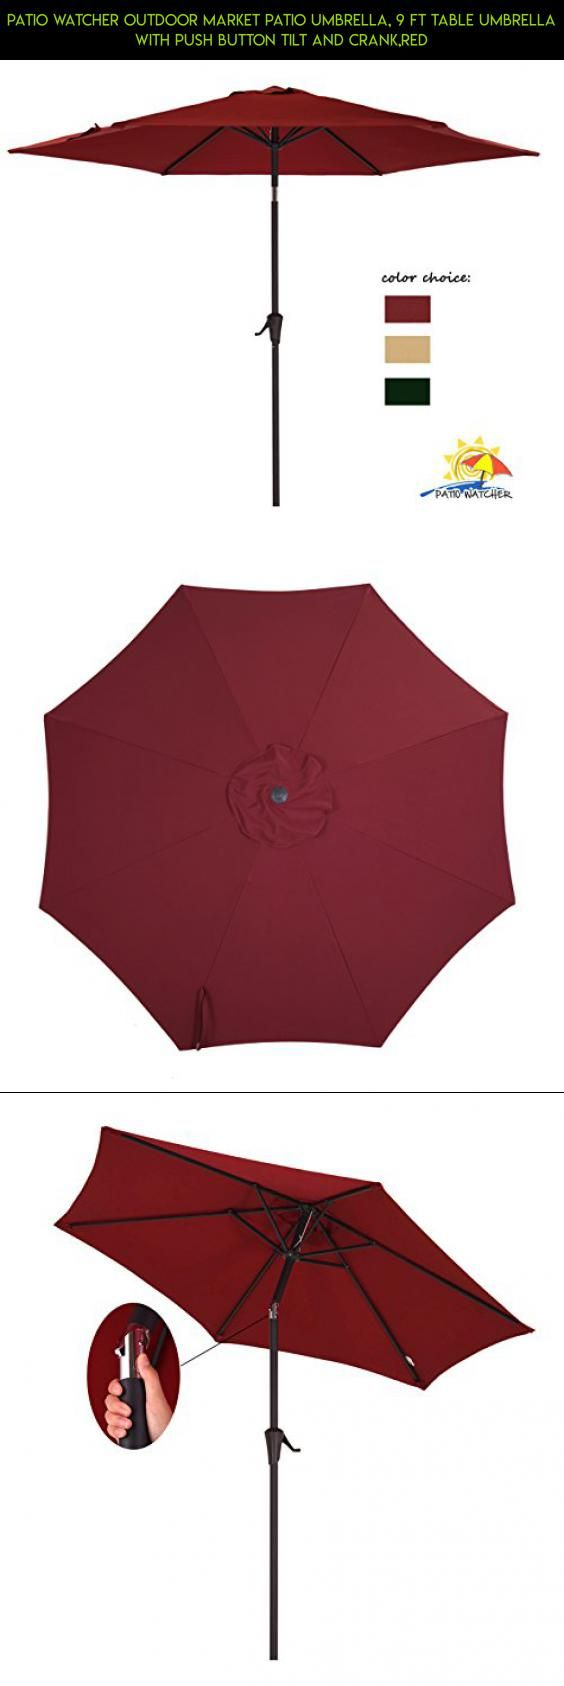 Patio Watcher Outdoor Market Patio Umbrella, 9 Ft Table Umbrella with Push Button Tilt and Crank,Red #camera #sale #tech #kit #gadgets #drone #fpv #plans #on #racing #products #parts #shopping #technology #pools